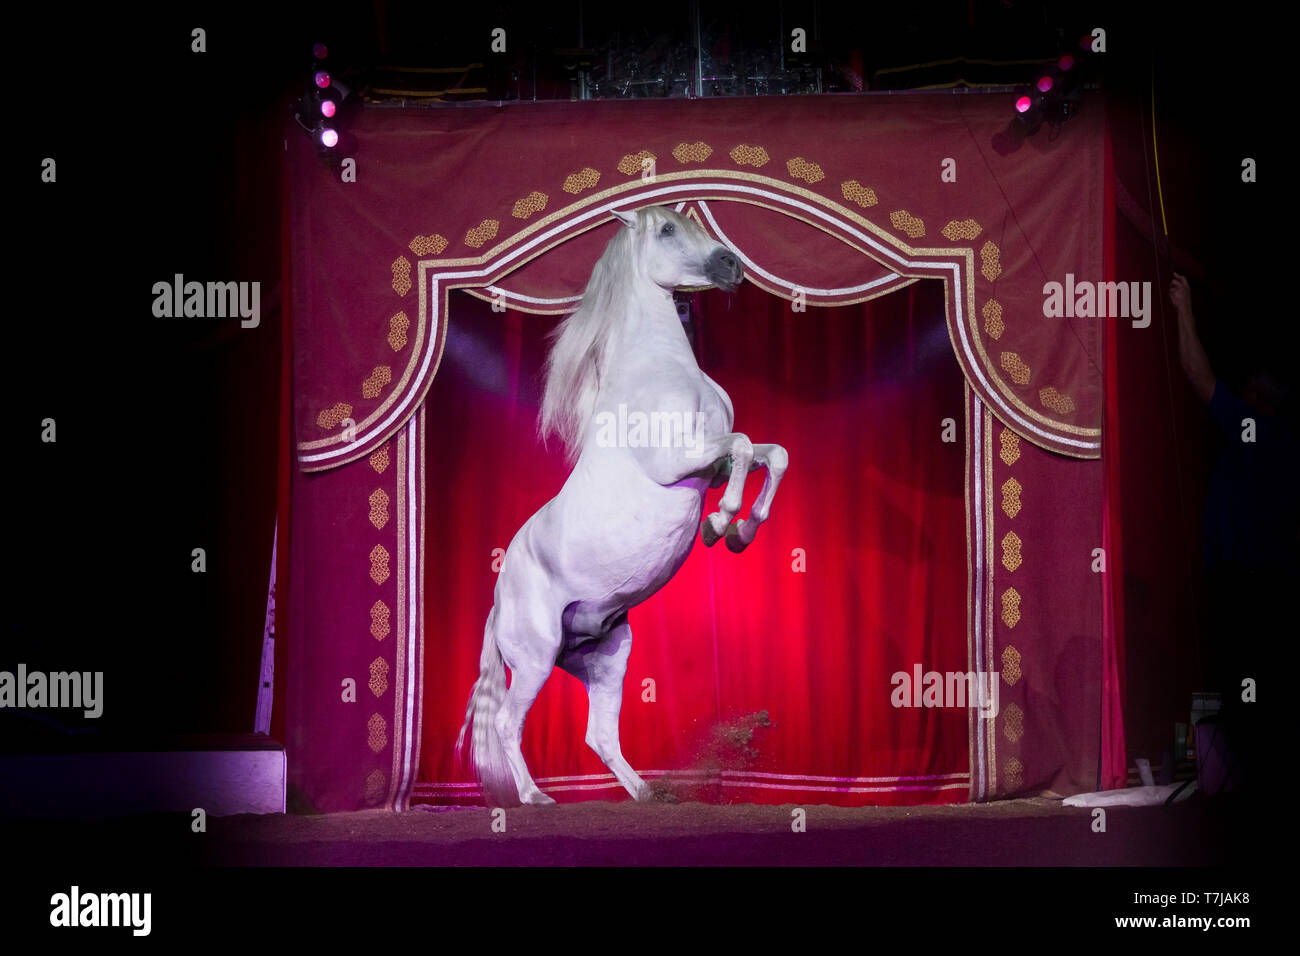 Pura Raza Espanola, Andalusian. Gray stallion in a circus, rearing in front of a red curtain. Austria - Stock Image